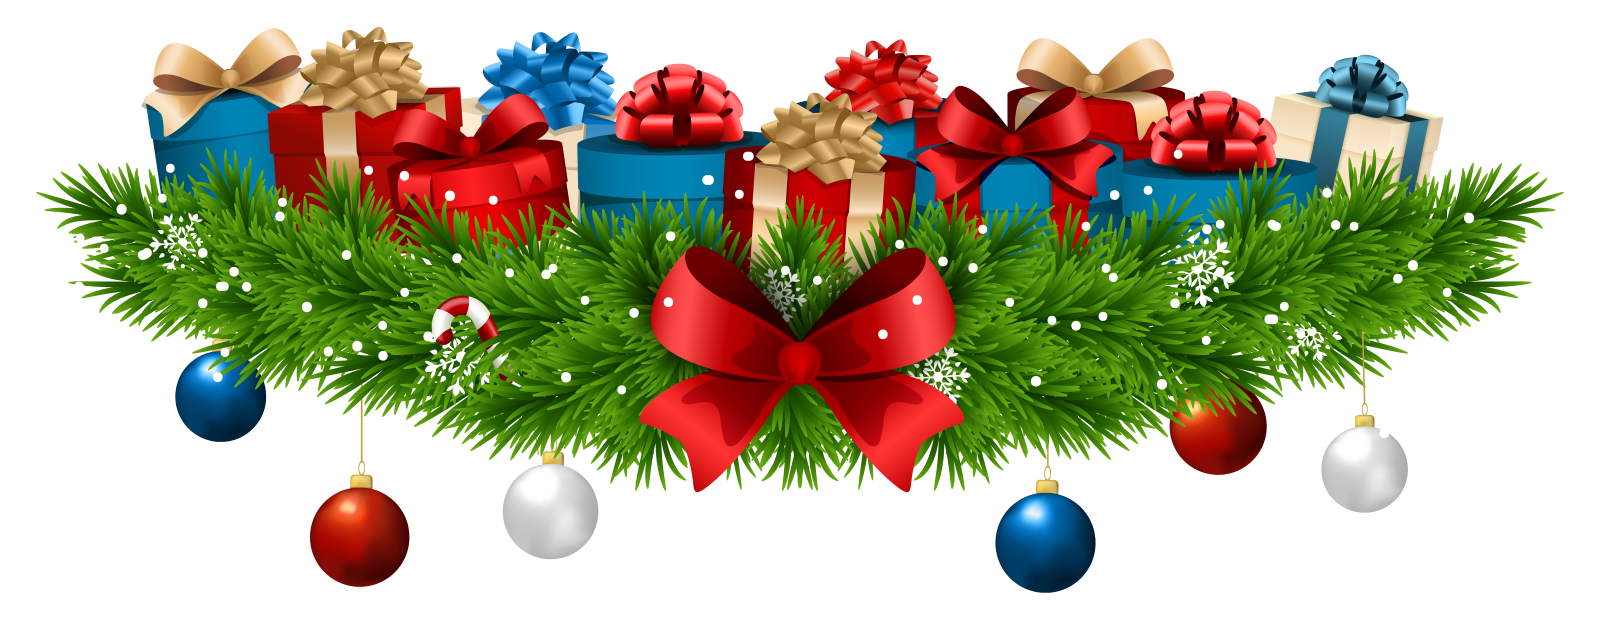 christmas-gift-clipart-16.png